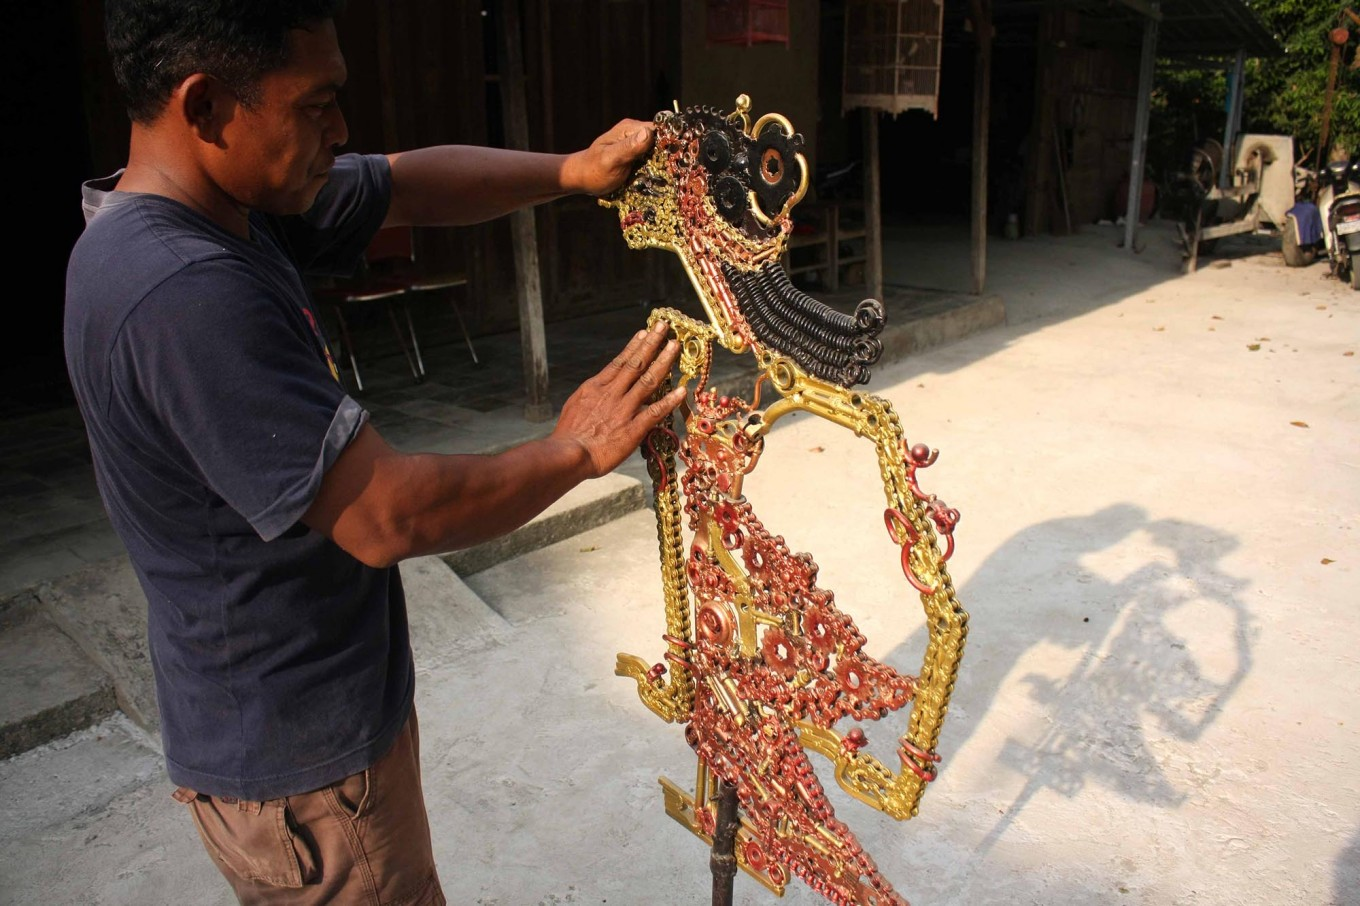 Agung holds a puppet made of used parts to be Sun dried. JP/Maksum Nur Fauzan